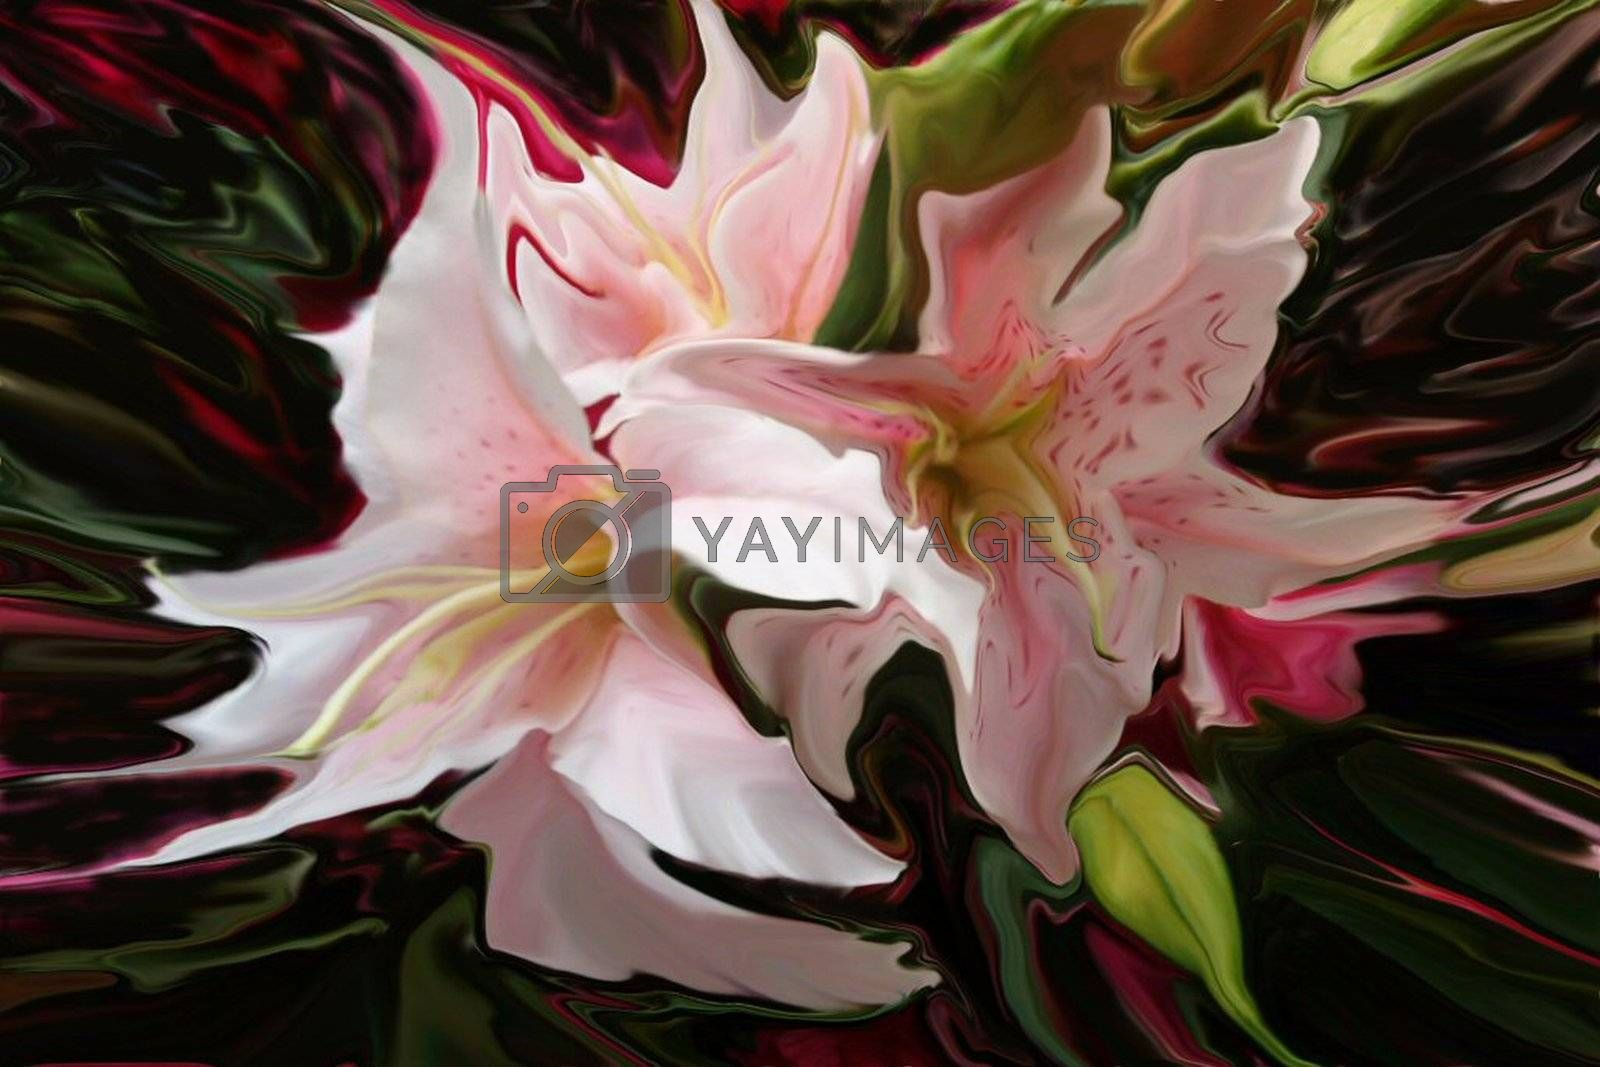 Abstract bouquet of lilly flowers.